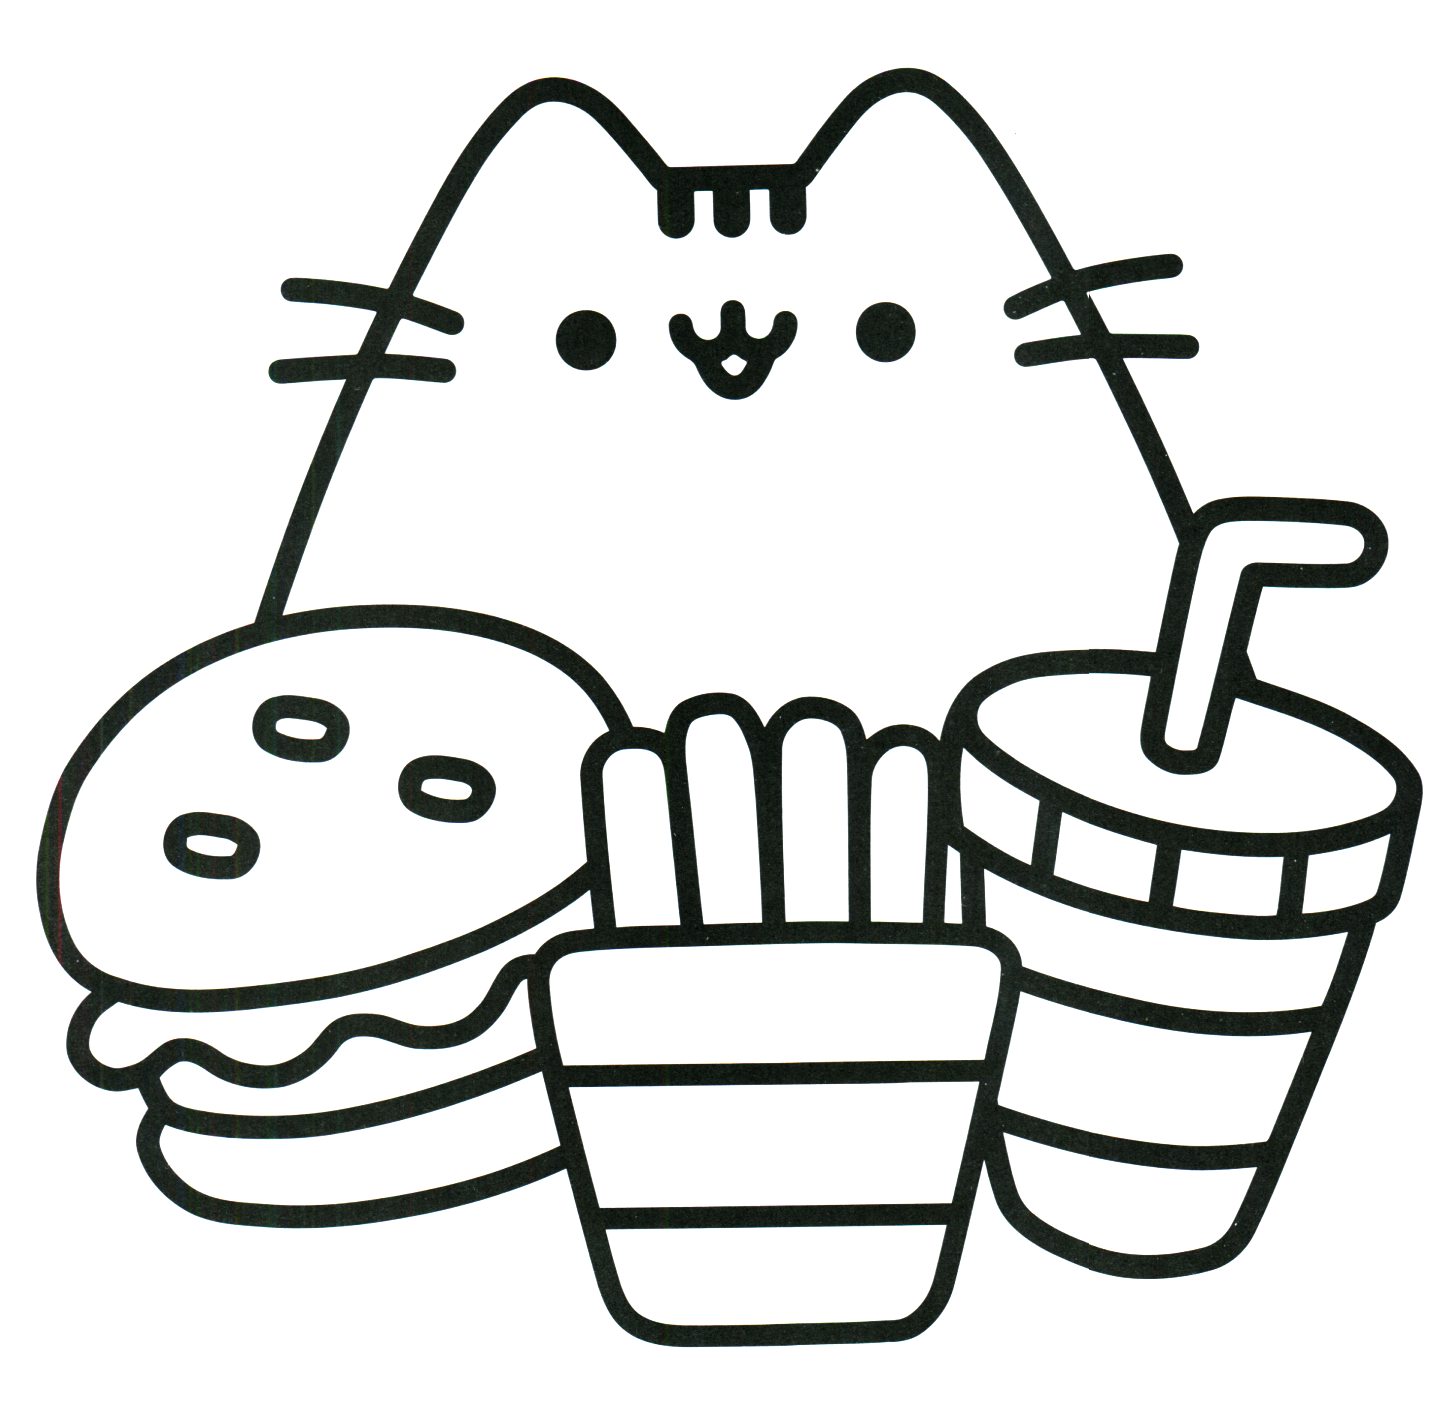 coloring cute coloring pages ideas adult colouri with online christmas coloring color pictures onli pusheen coloring book pusheen pusheen the cat - Cute Coloring Sheets